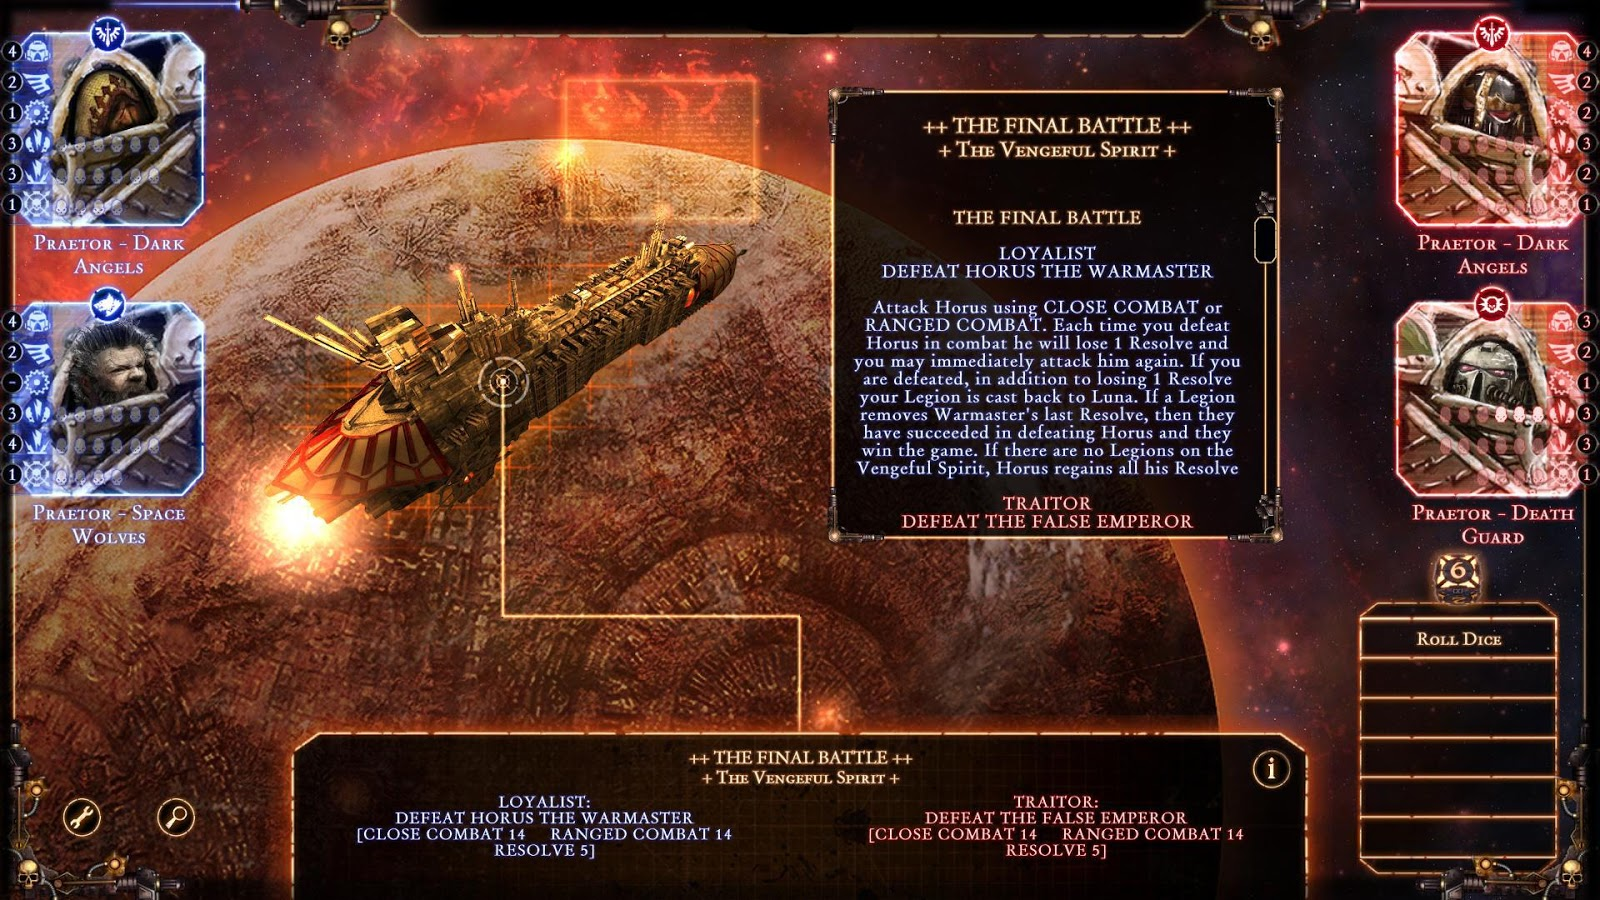 Talisman: The Horus Heresy Screenshot 1